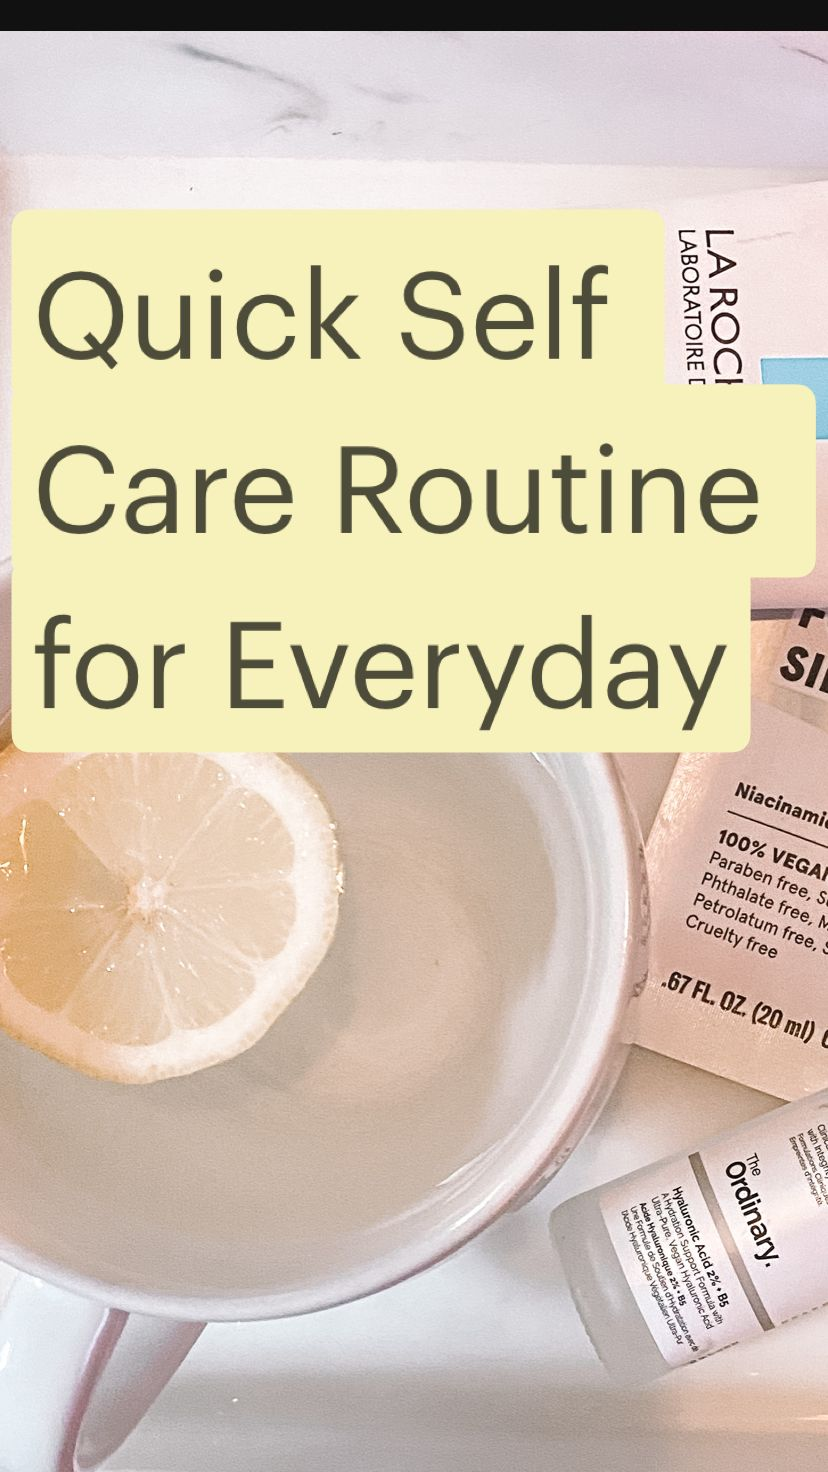 Quick Self Care Routine for Everyday